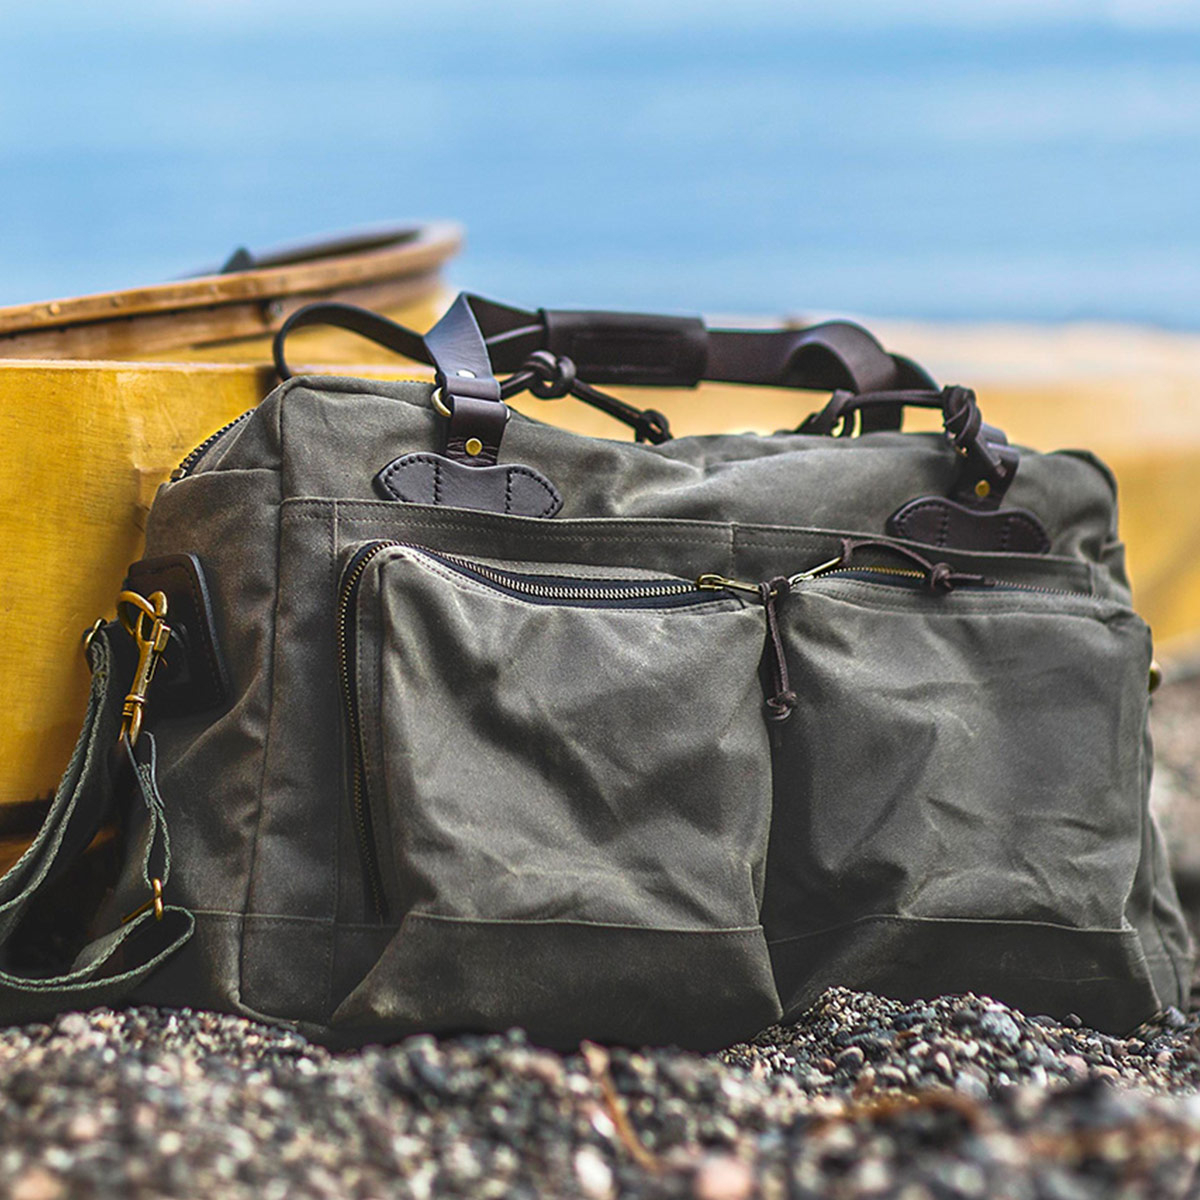 Filson 48-Hour Duffle, perfect for a weekend away or a small business-trip